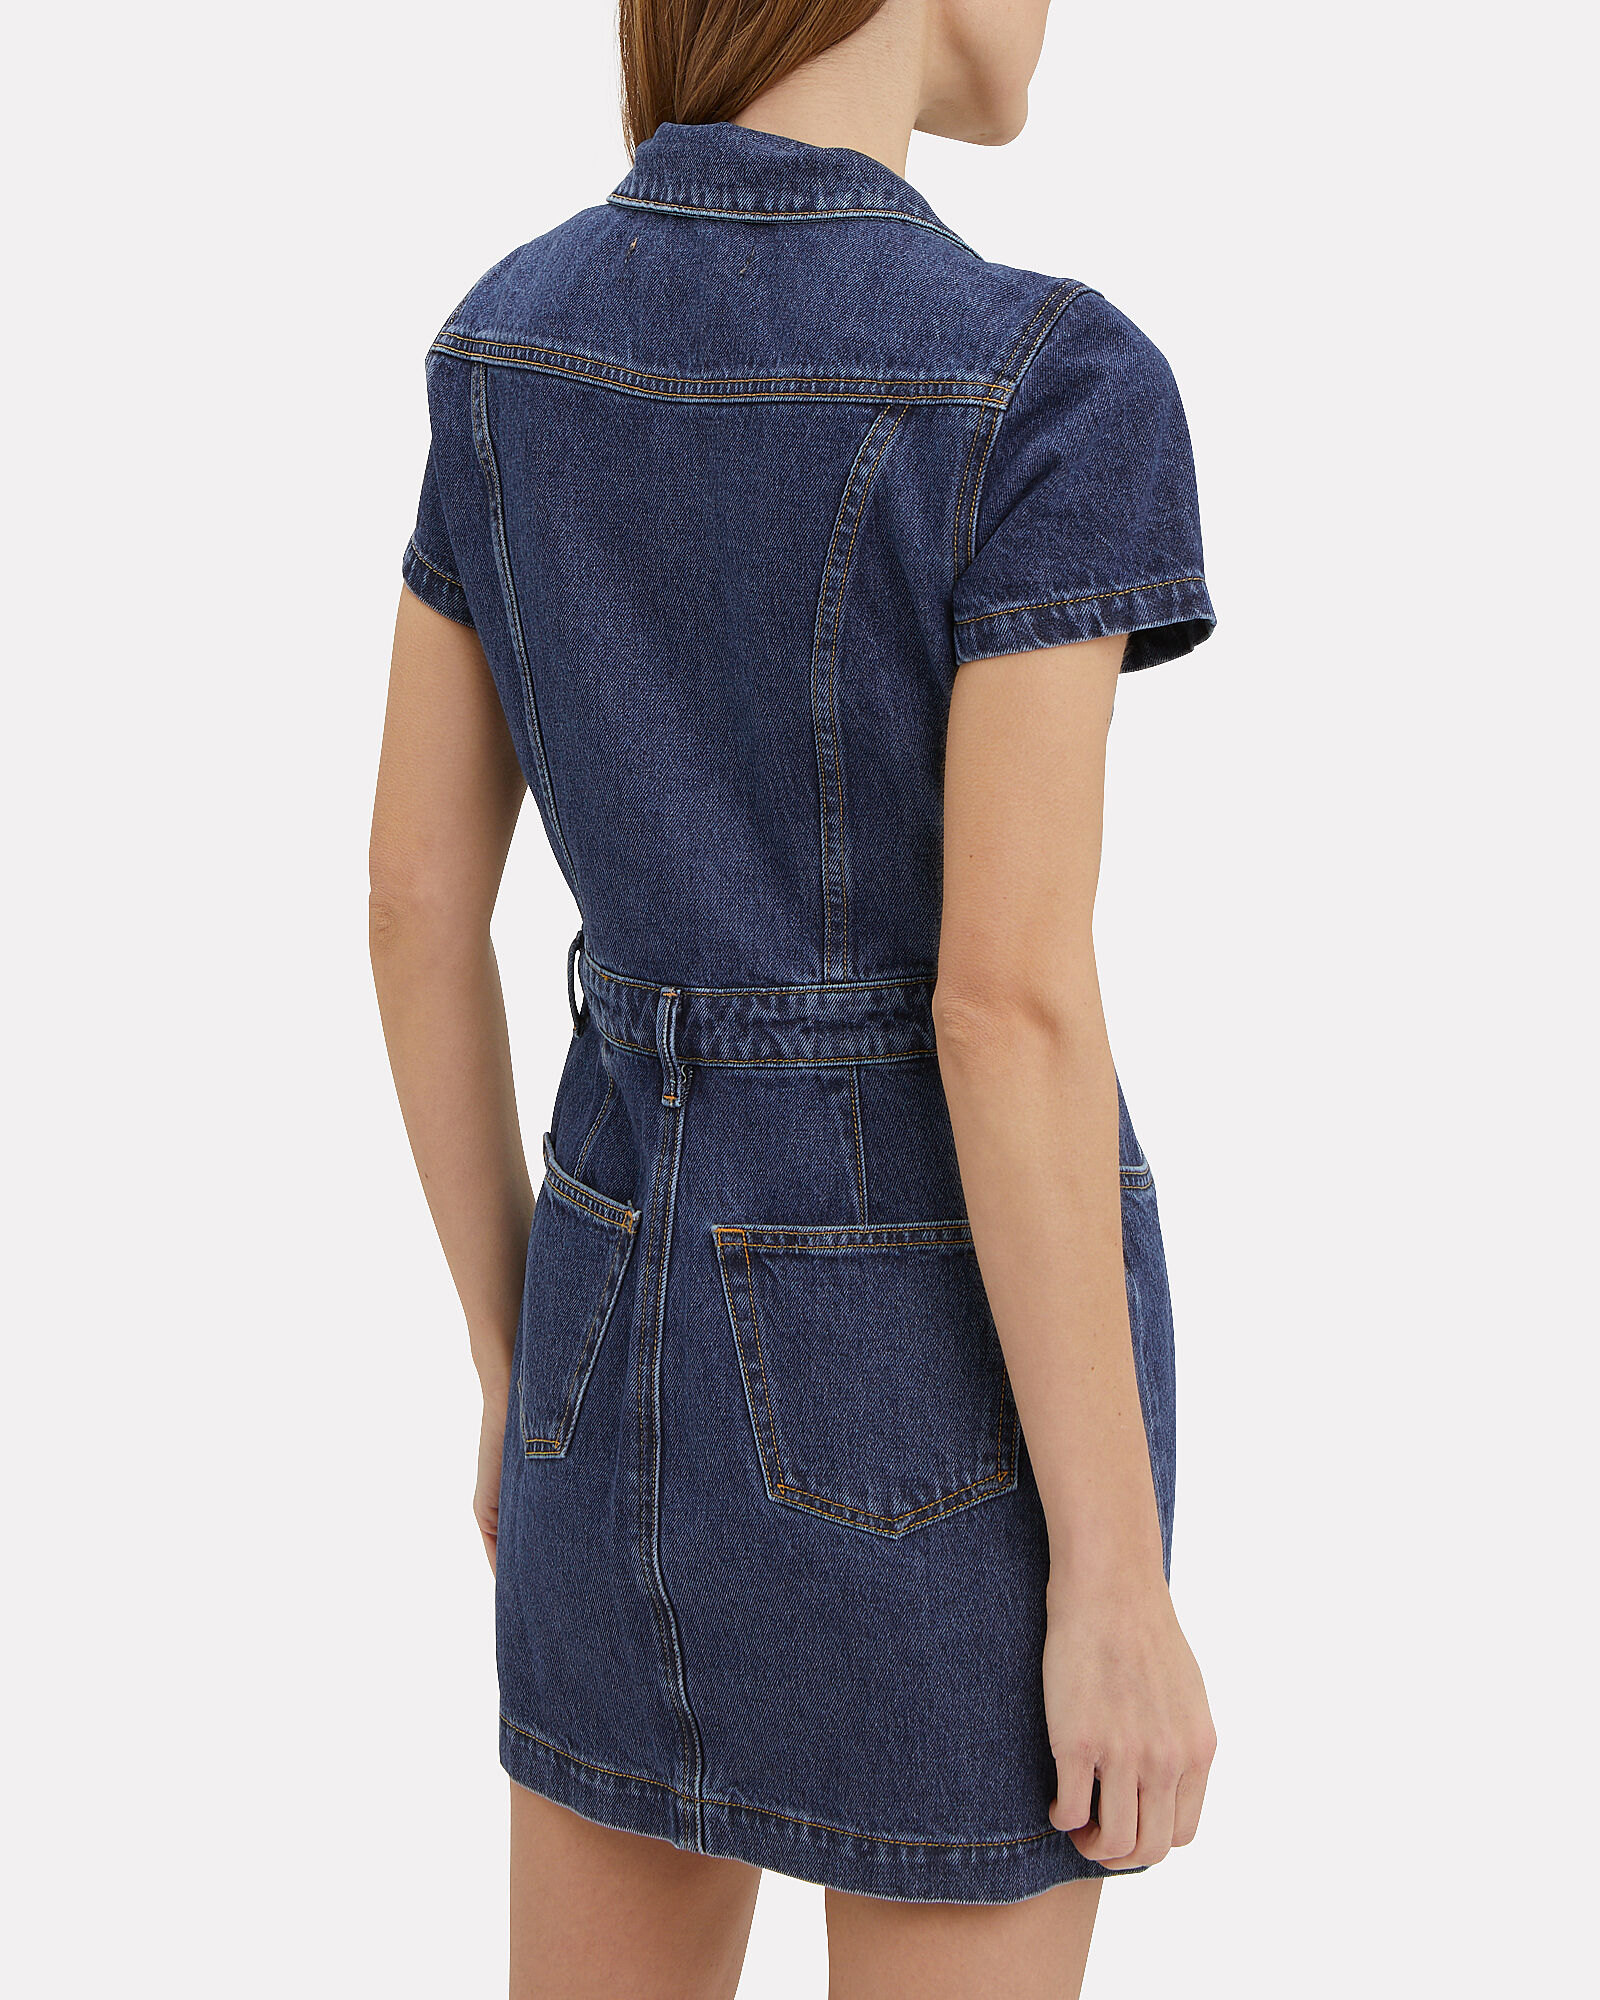 Max Denim Shirt Dress, DARK WASH DENIM, hi-res